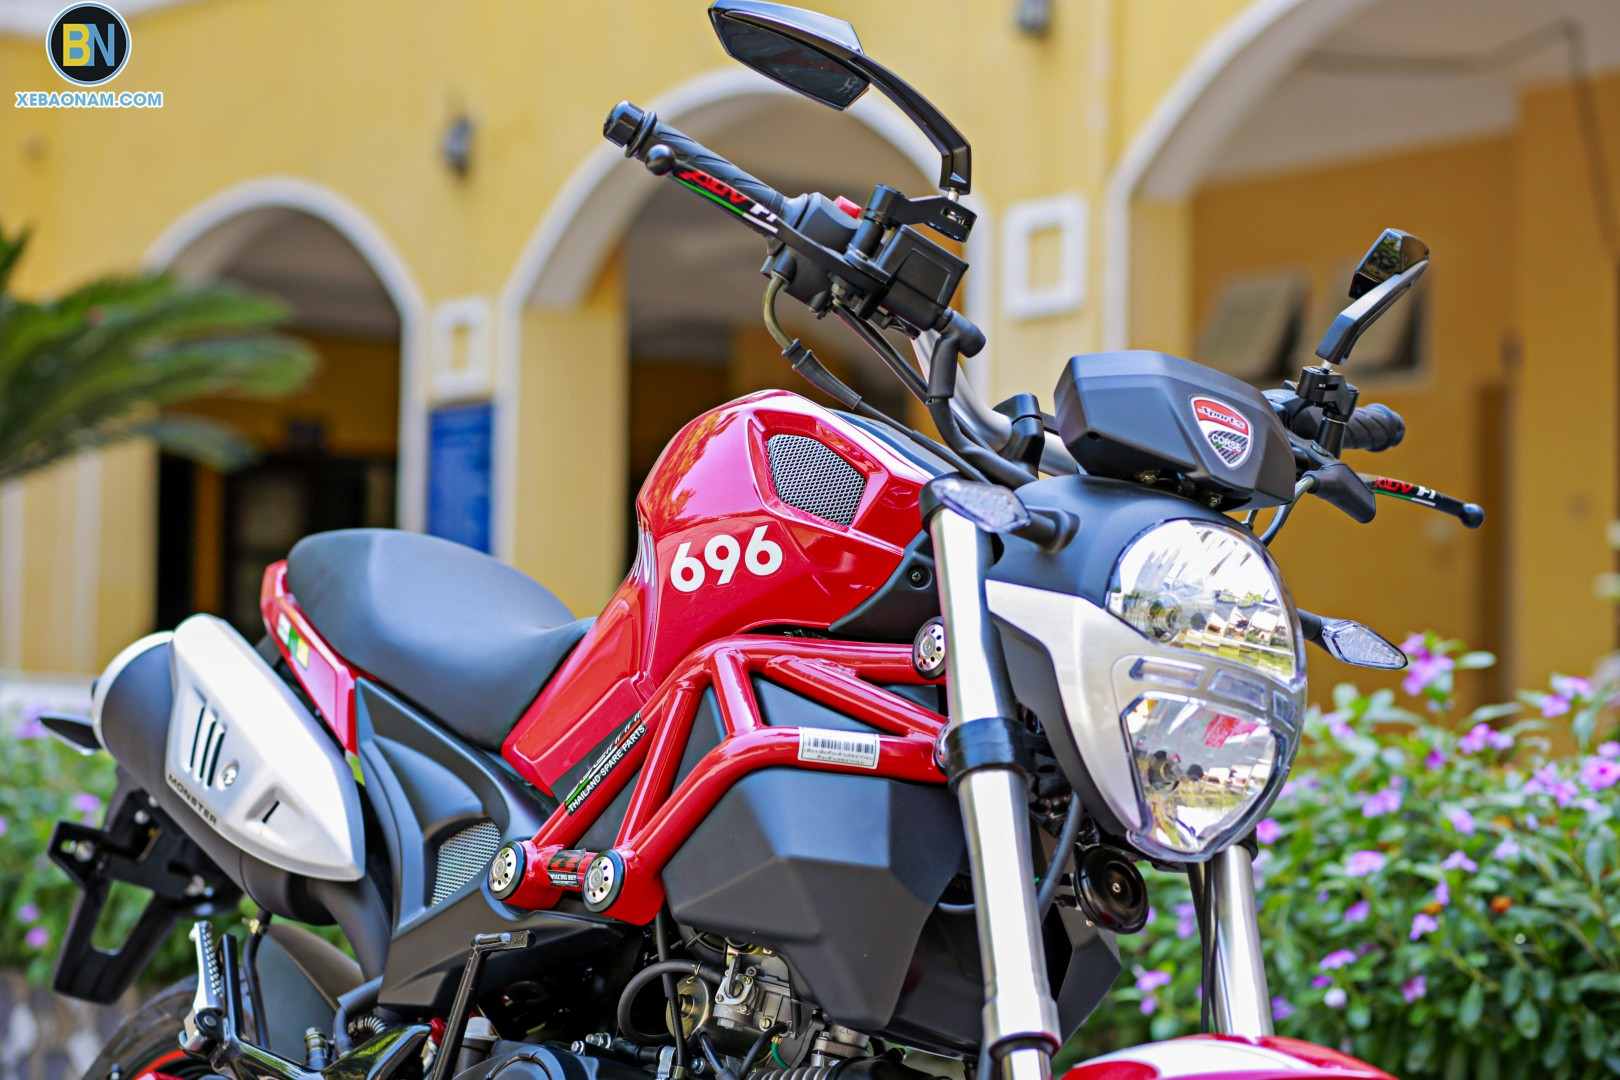 xe-may-ducati-mini-monster-110-xebaonam(20)